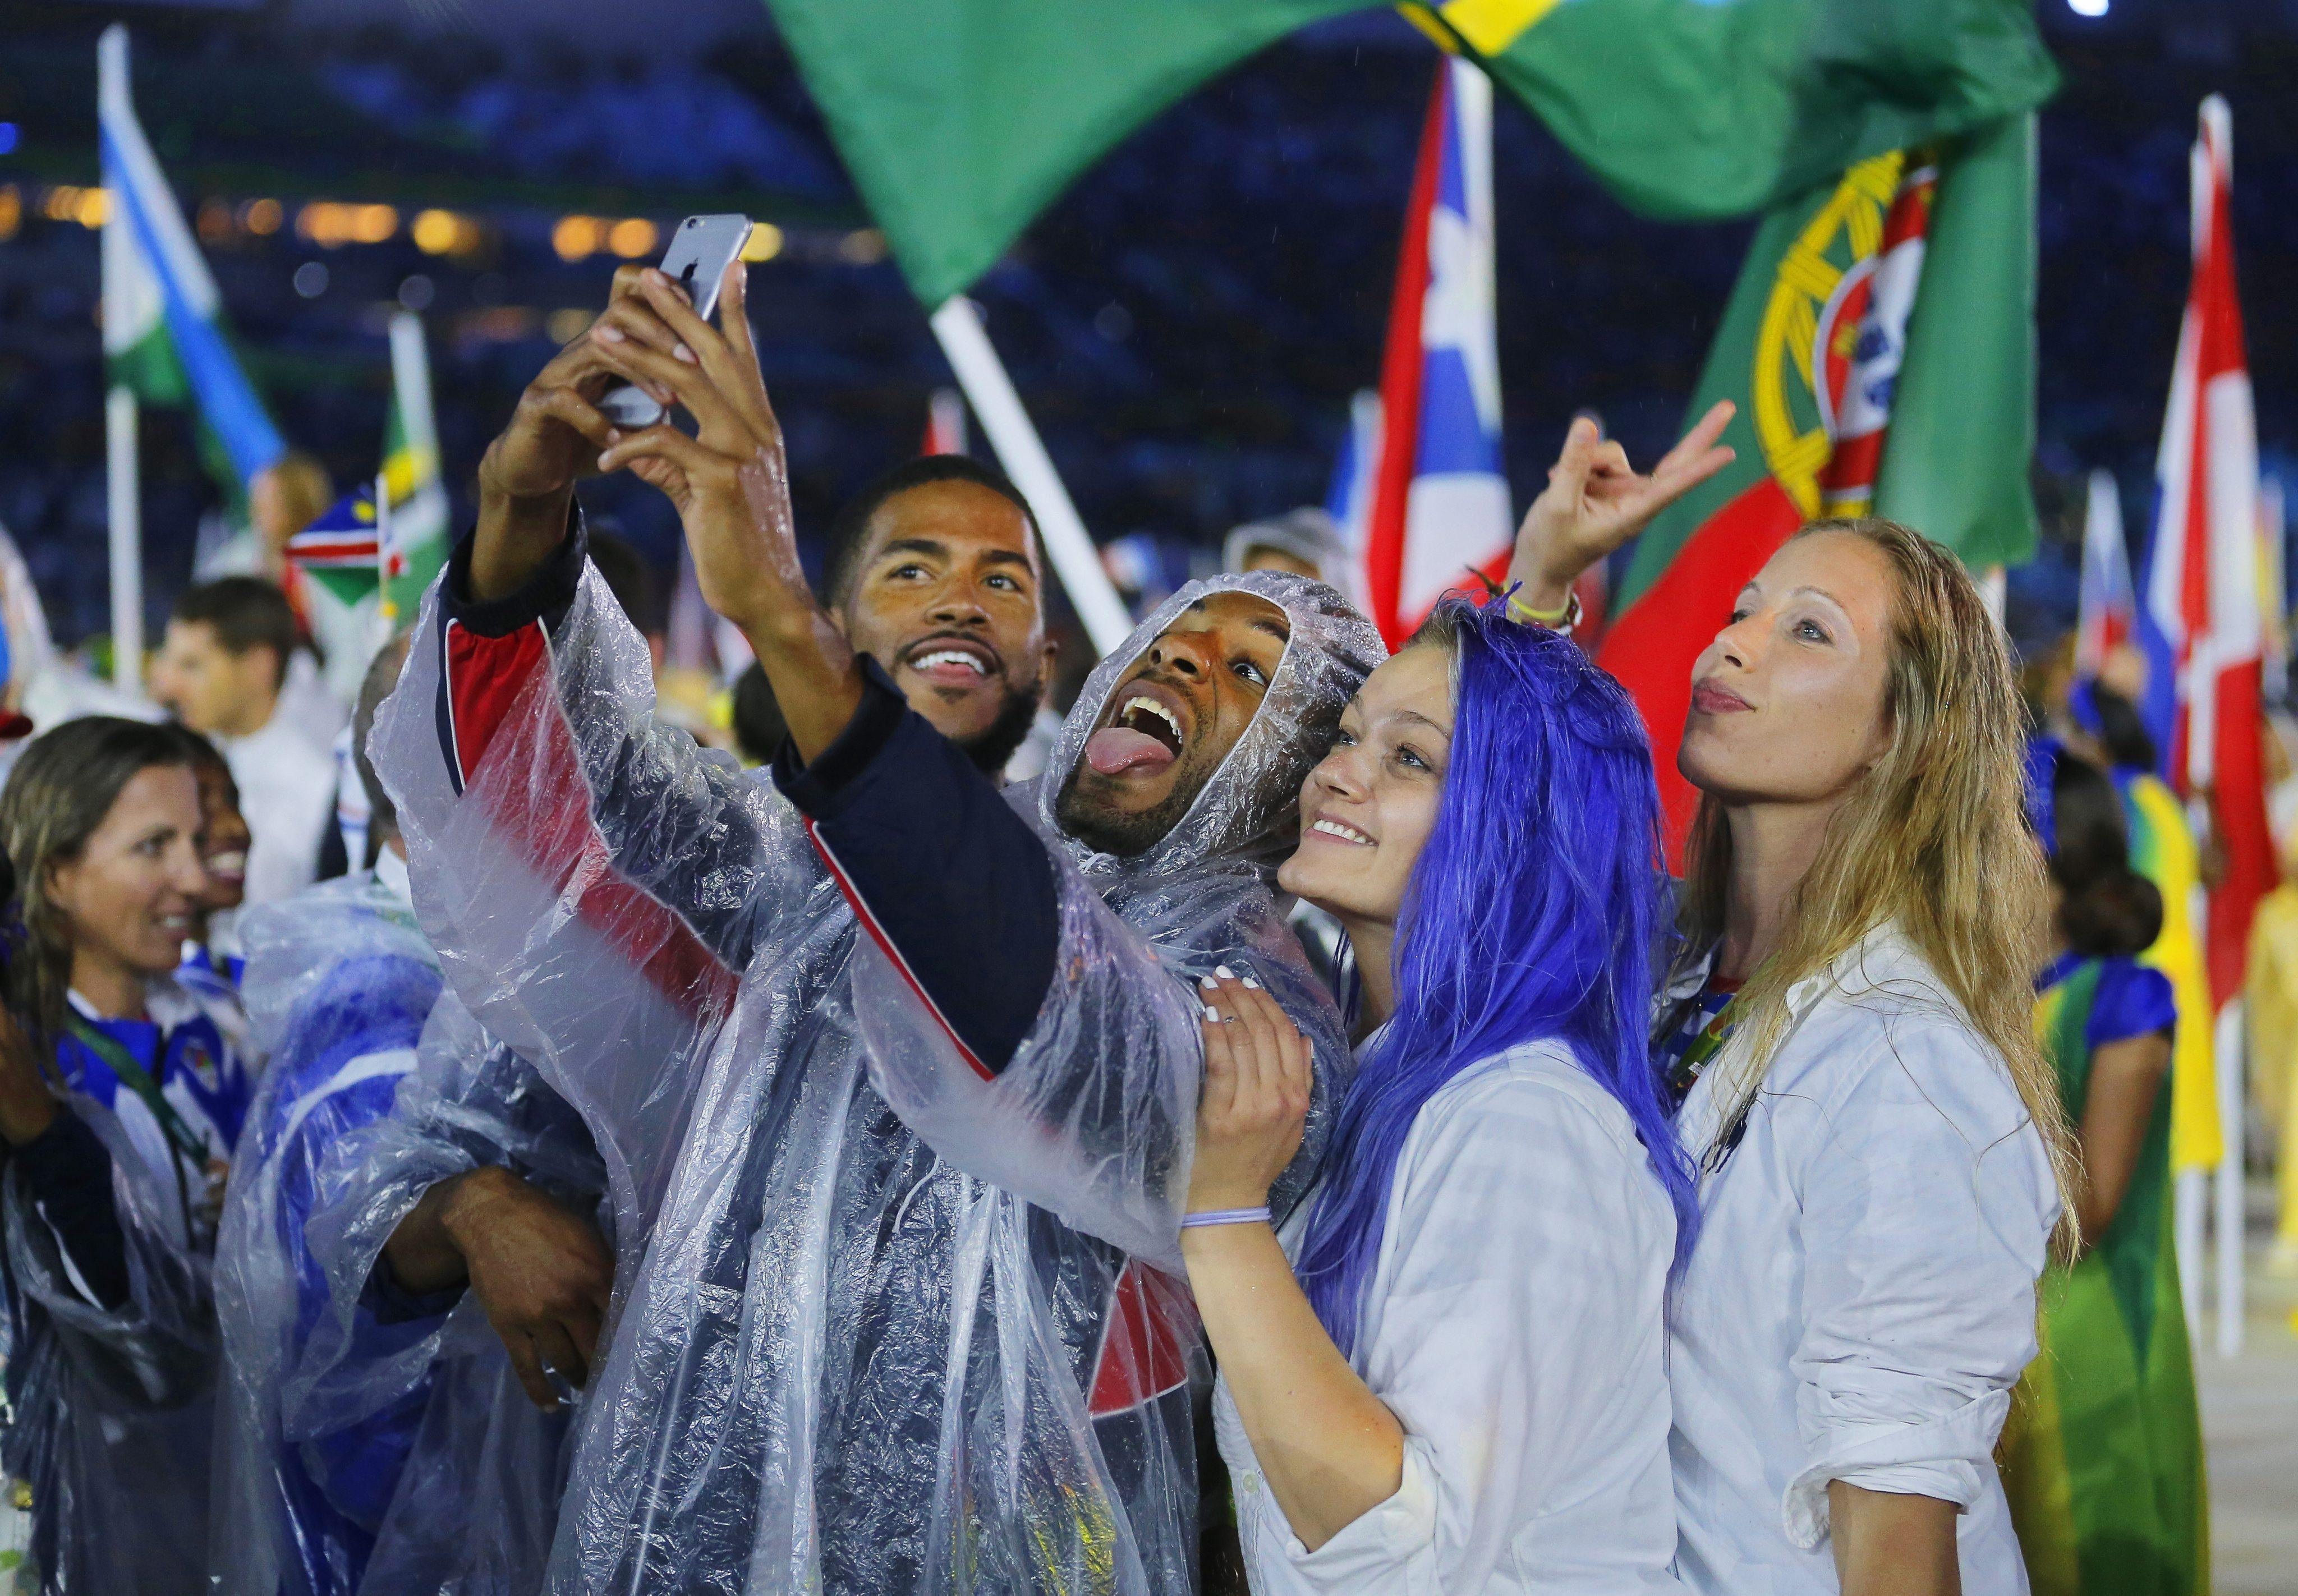 . Rio De Janeiro (Brazil), 21/08/2016.- Athletes of the USA attend the Closing Ceremony of the Rio 2016 Olympic Games at the Maracana Stadium in Rio de Janeiro, Brazil, 21 August 2016. (Brasil, Estados Unidos) EFE/EPA/SERGEI ILNITSKY